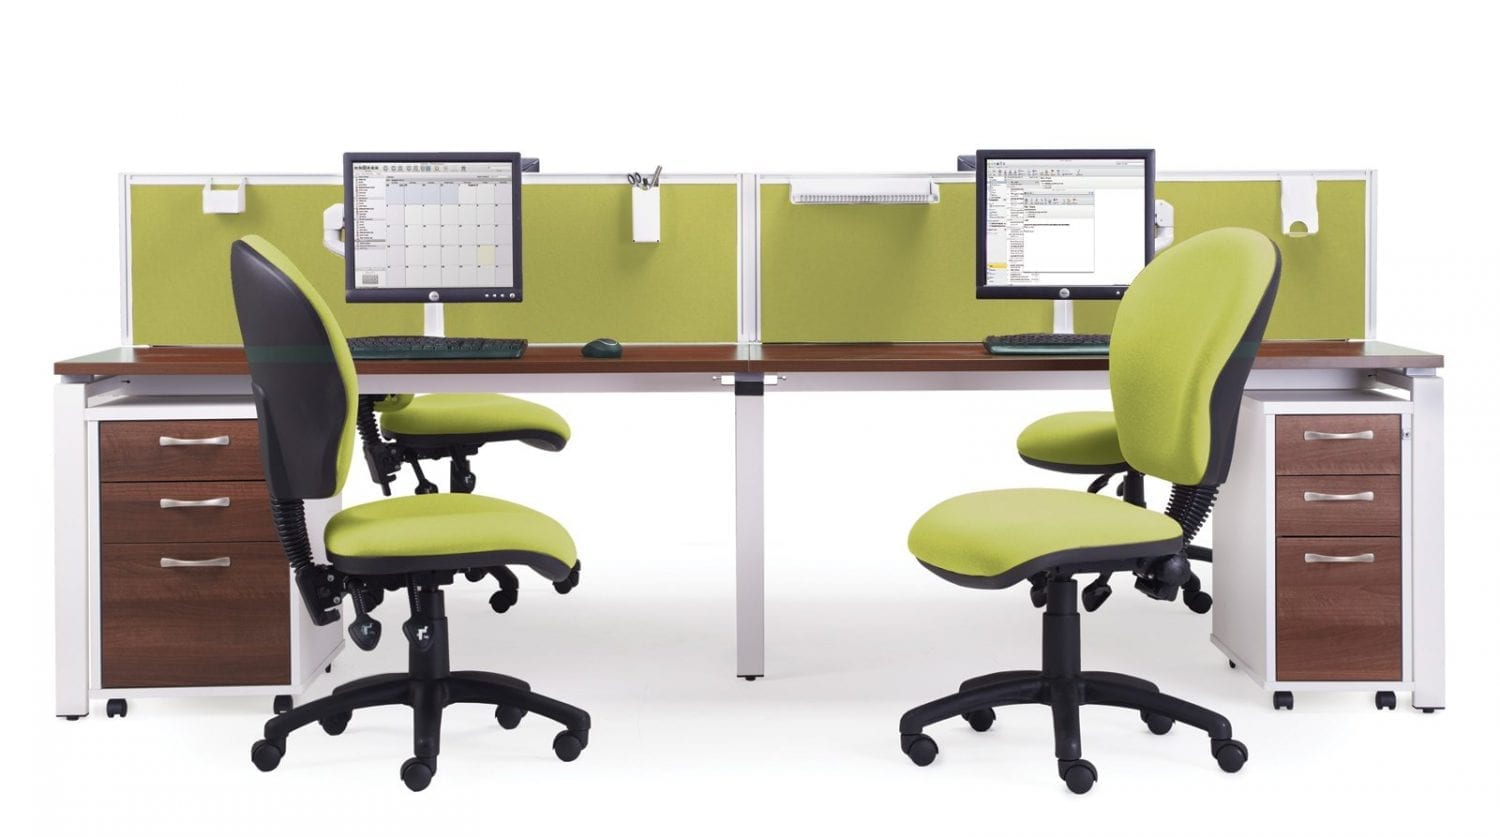 Two person office chair two person home office furniture two person desk home two person desk - Two person office desk ...